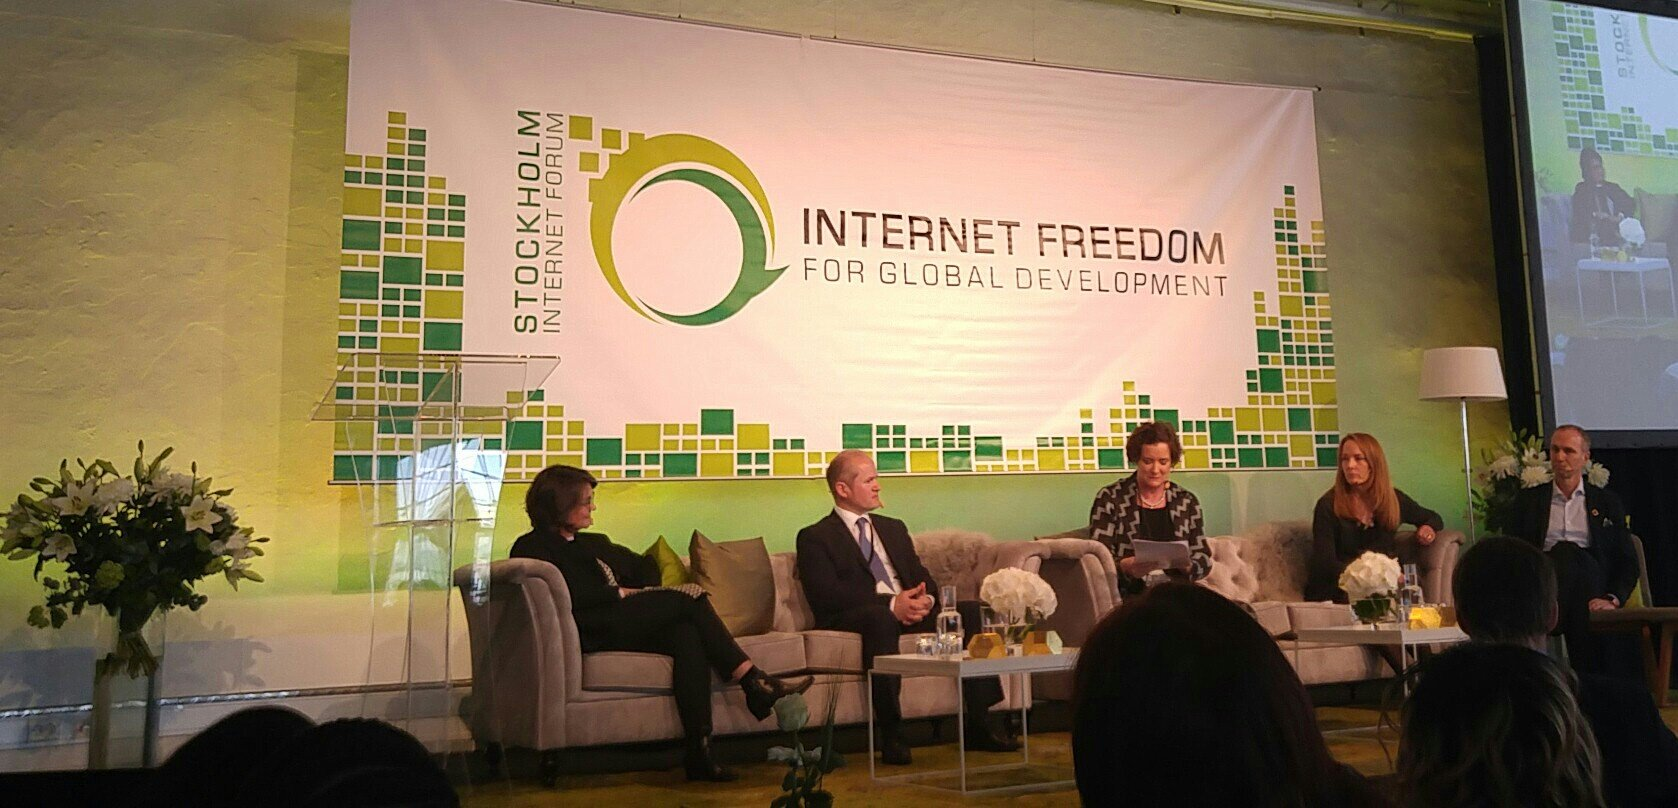 Main Session 2: A positive outlook, leave no one offline #SIF17 #leaveno1offline https://t.co/wEfPHy9iy5